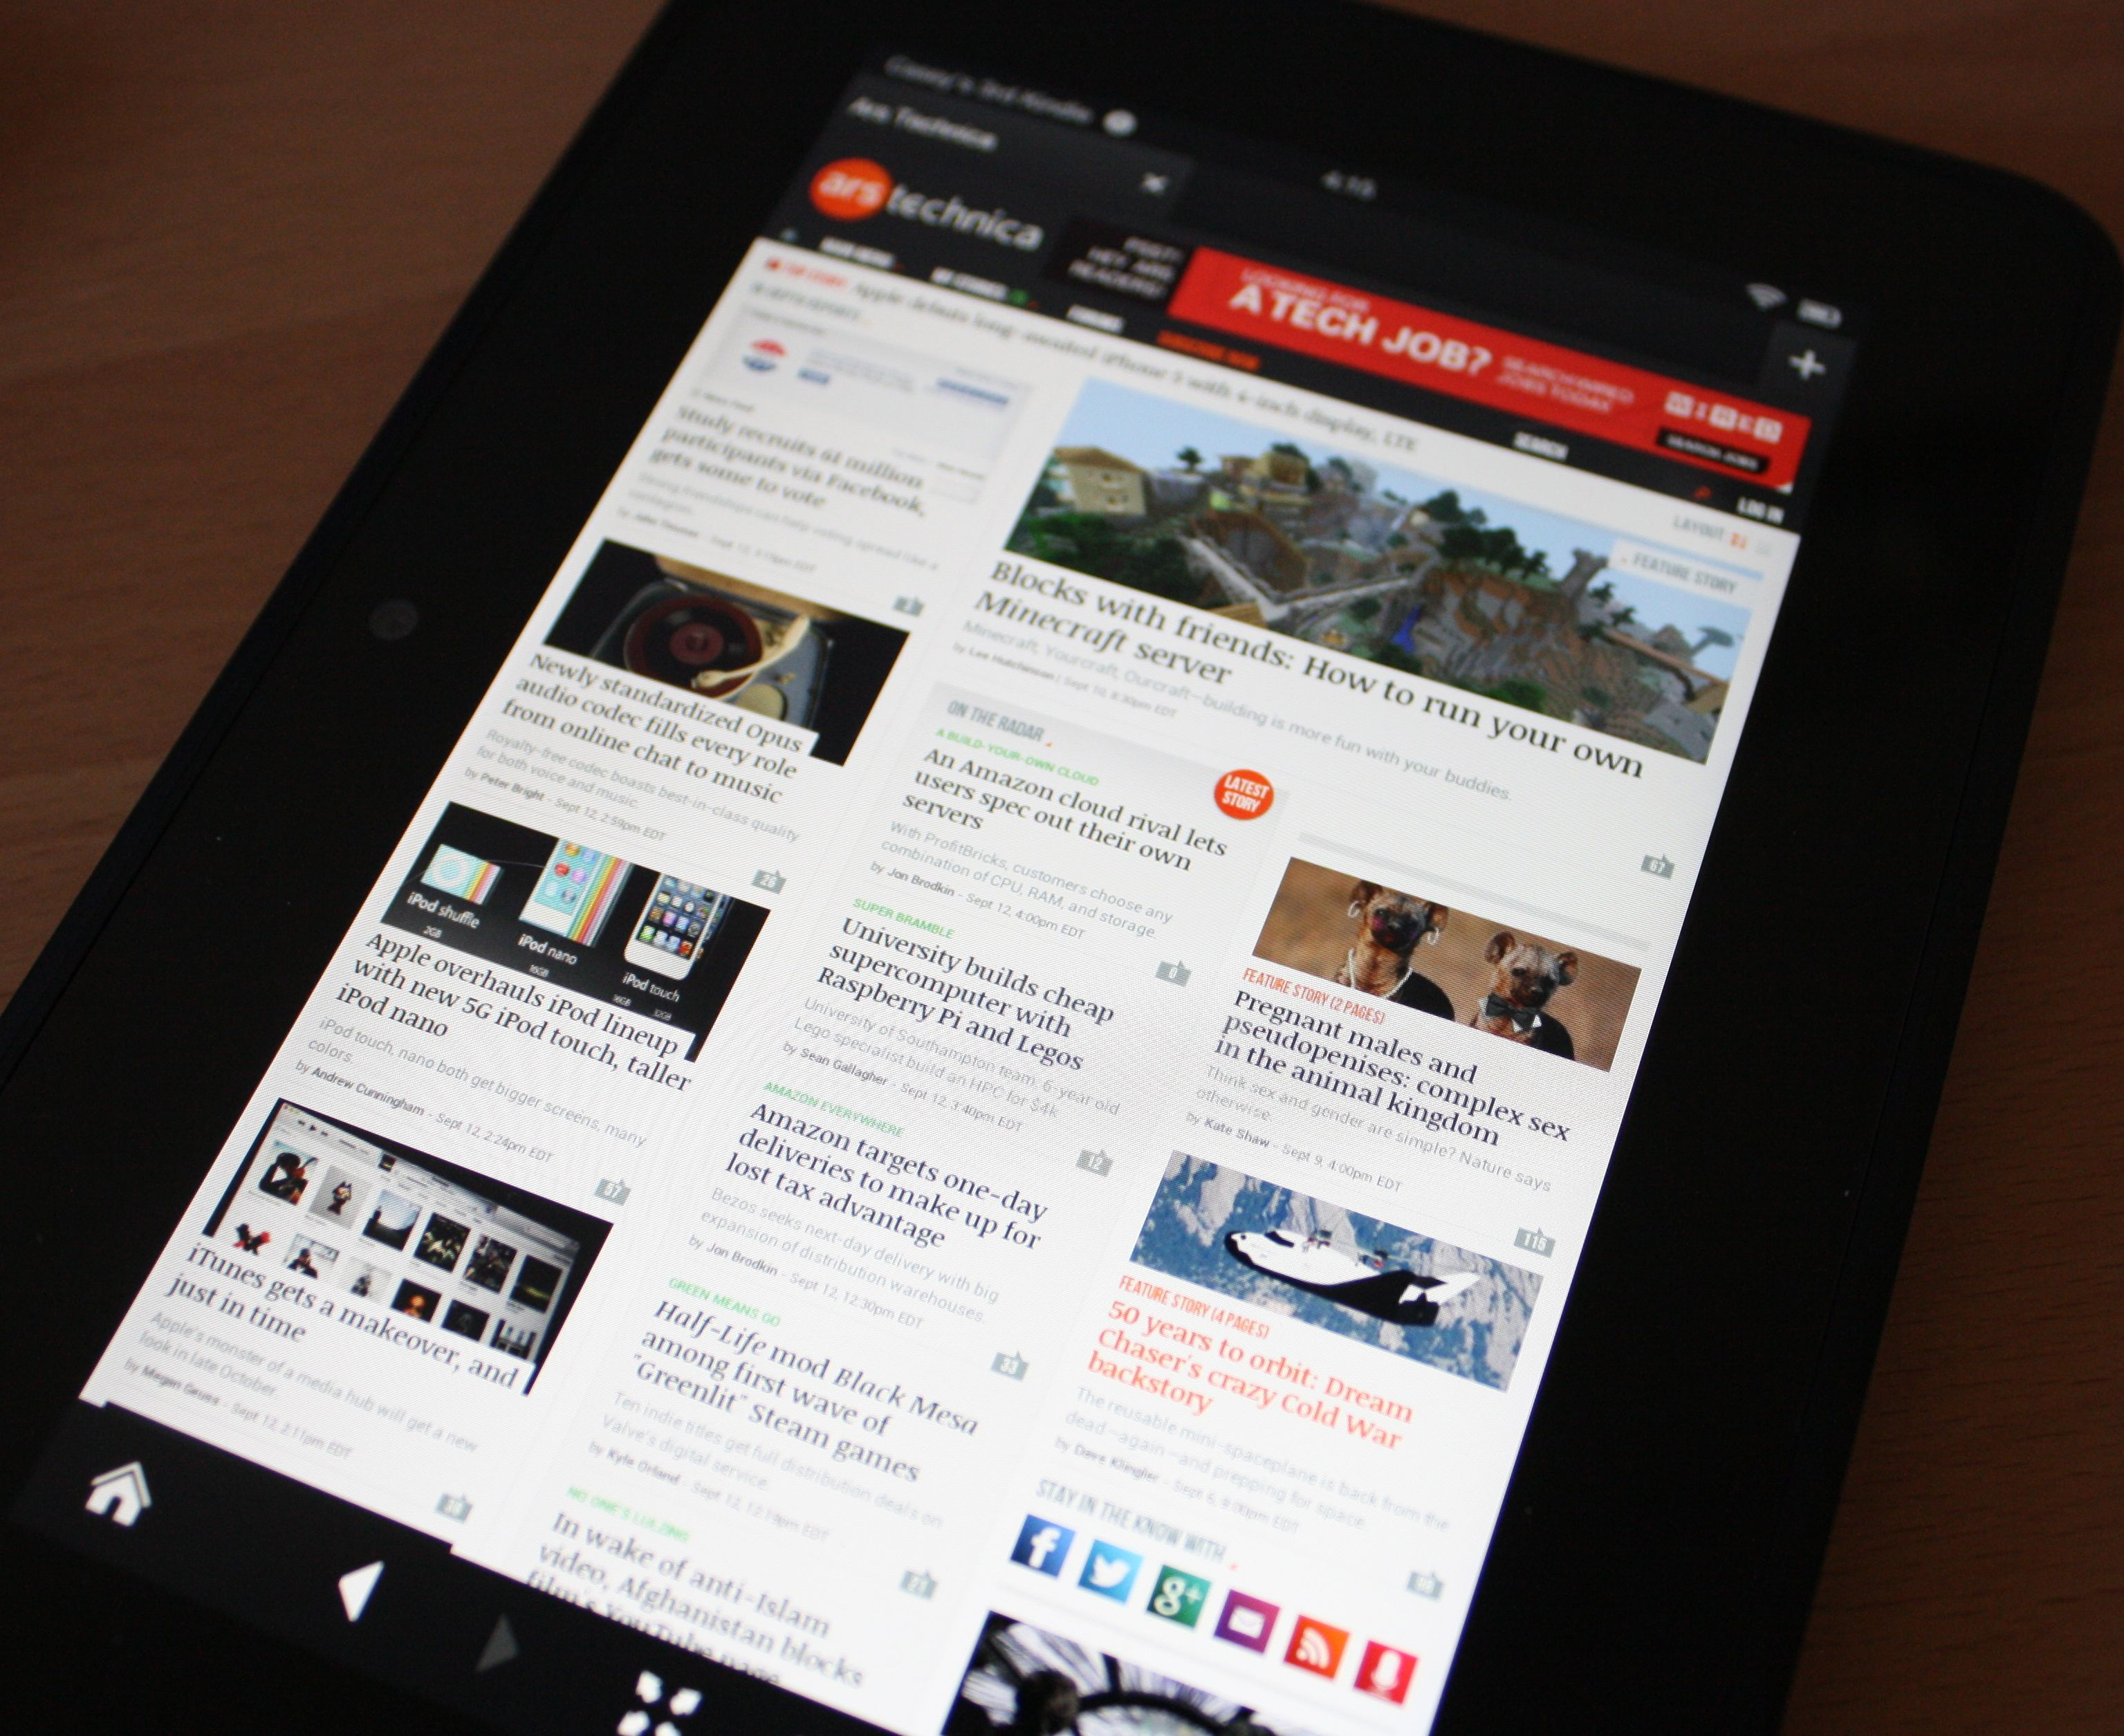 How to Root Kindle Fire HD 8 9 on Mac